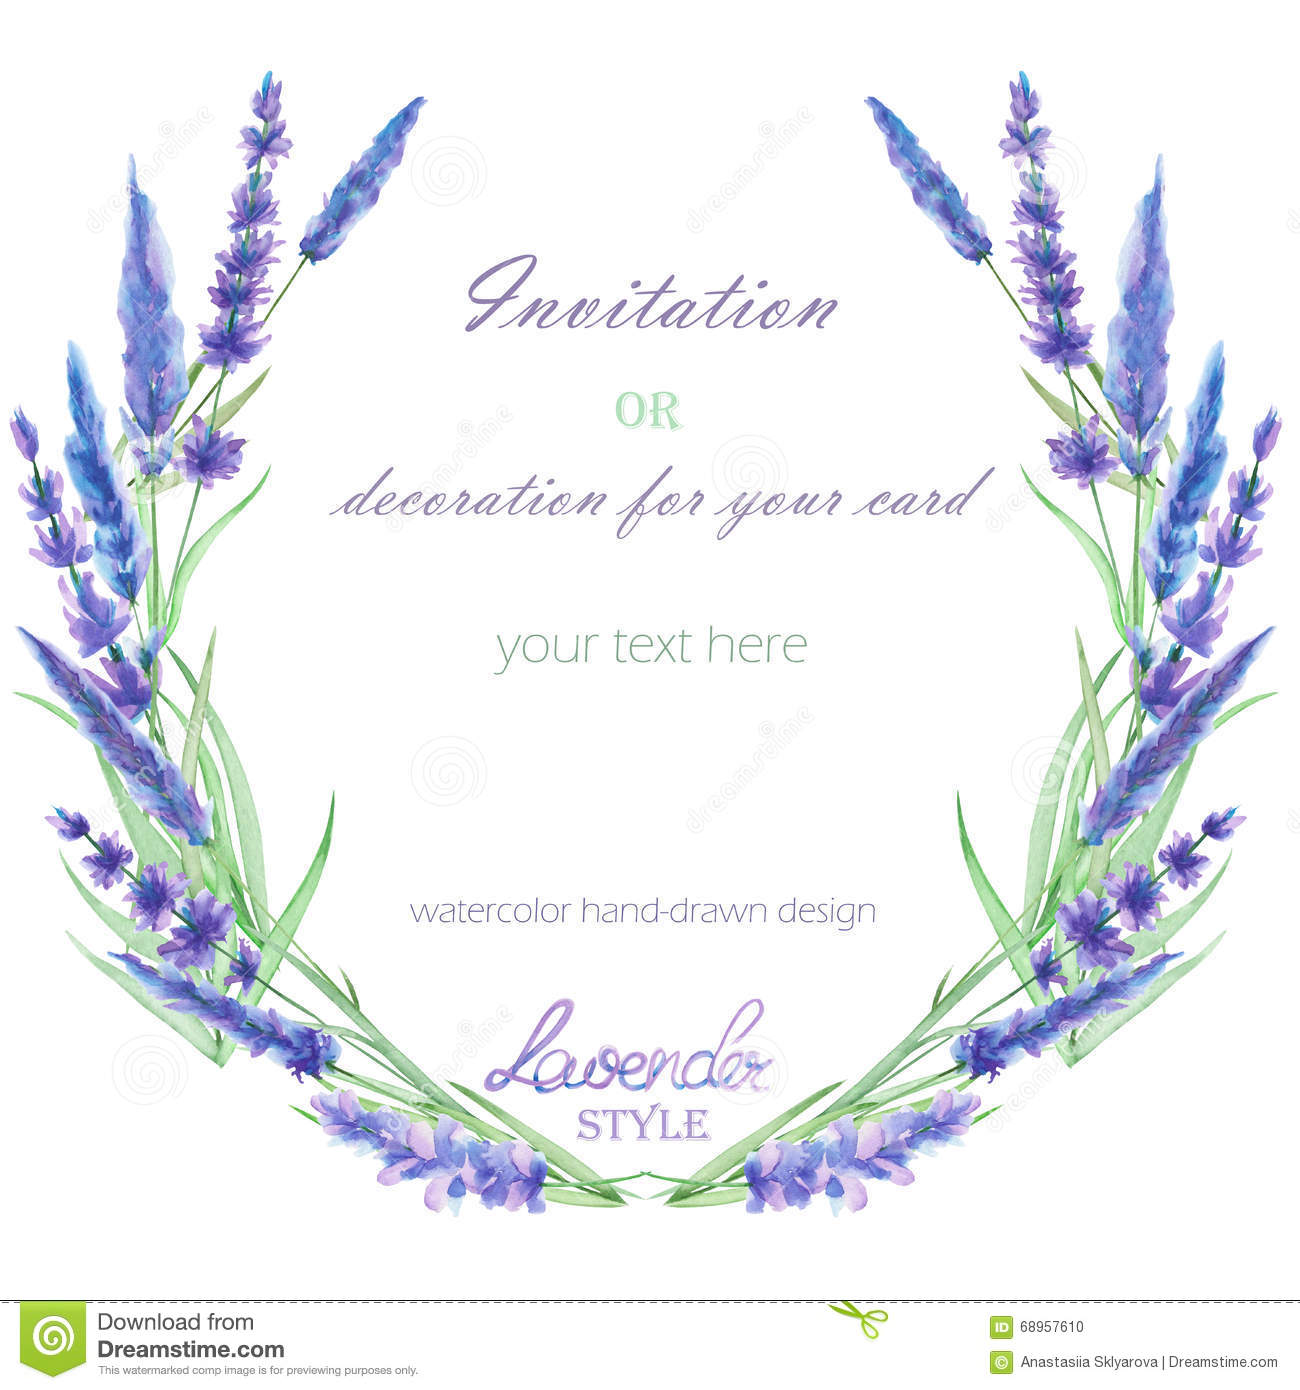 A Circle Frame, Wreath, Frame Border With The Watercolor Lavender.